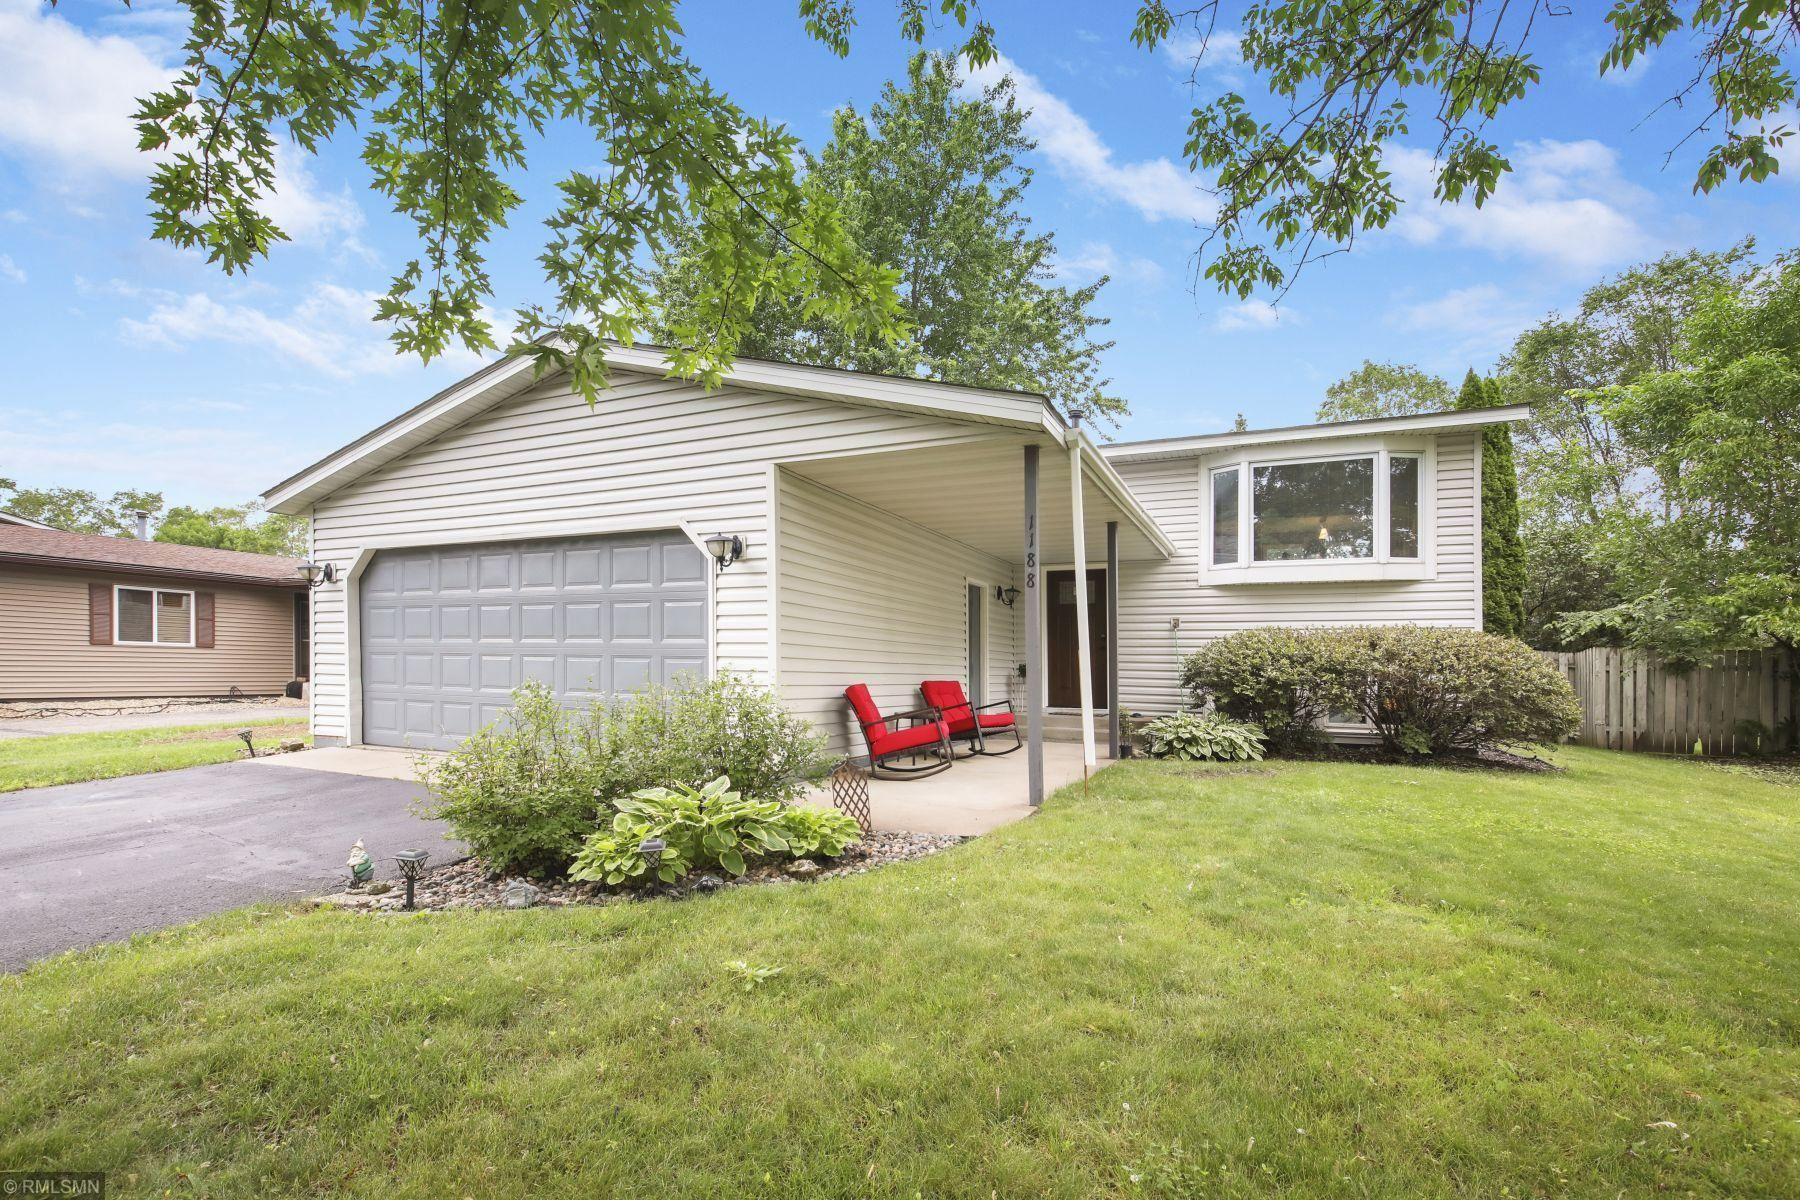 1188 Villa Court, Hastings, MN 55033 - #: 5608585